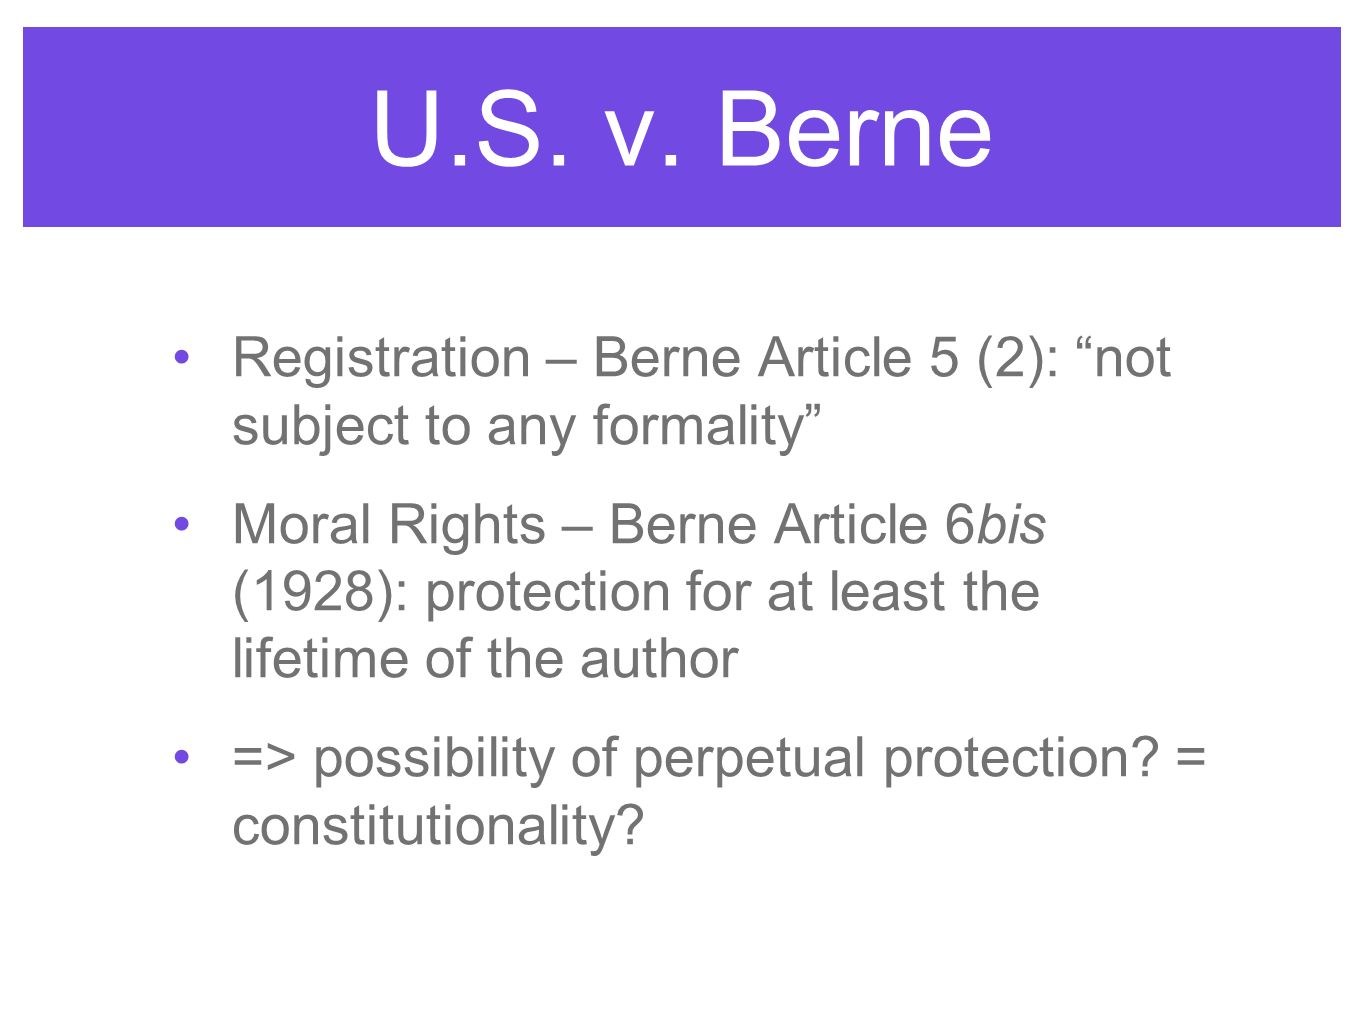 U.S. v. Berne Registration – Berne Article 5 (2): not subject to any formality